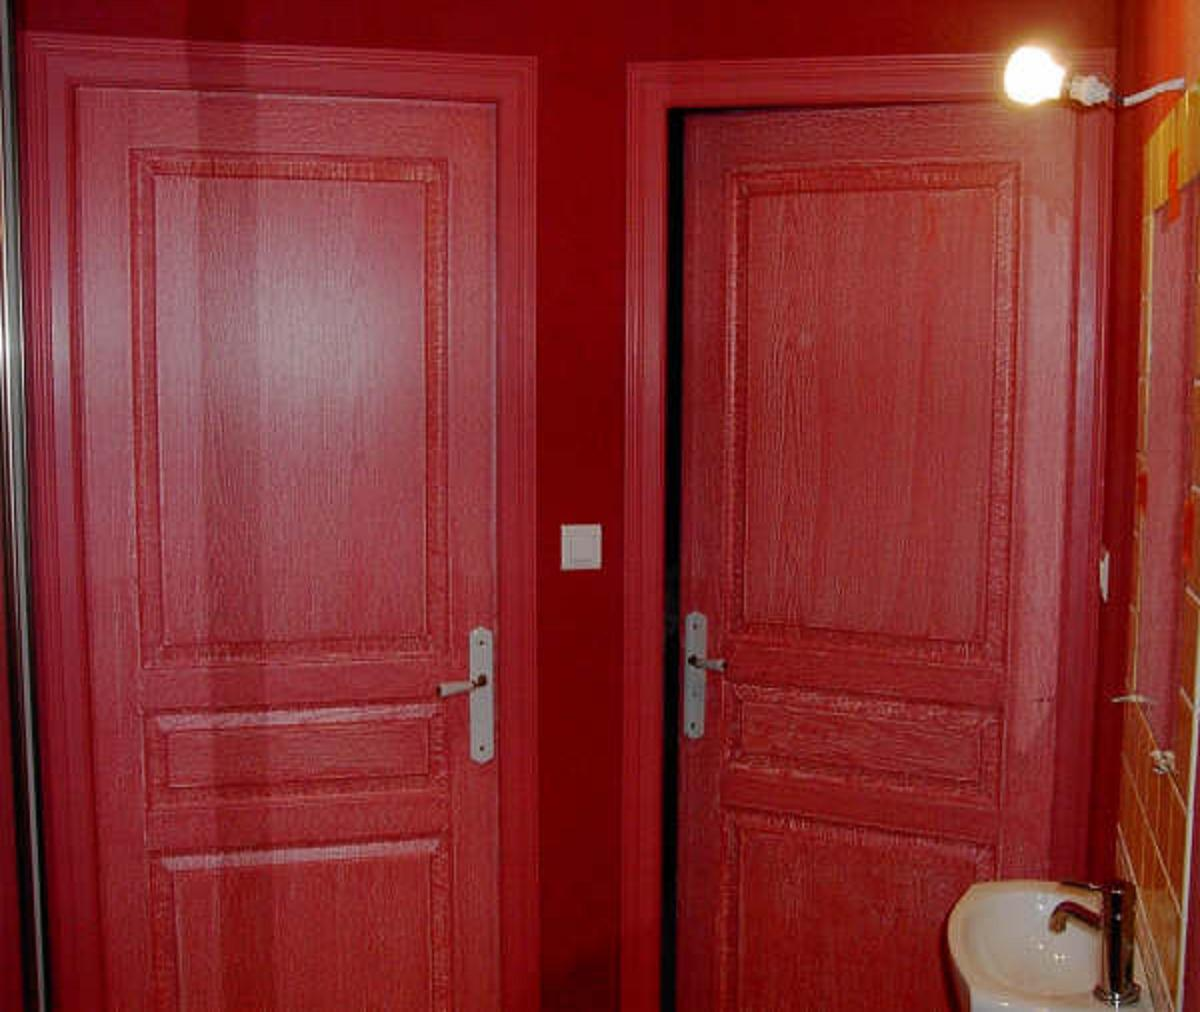 Inan decoration portes for Decoration porte cycle 3